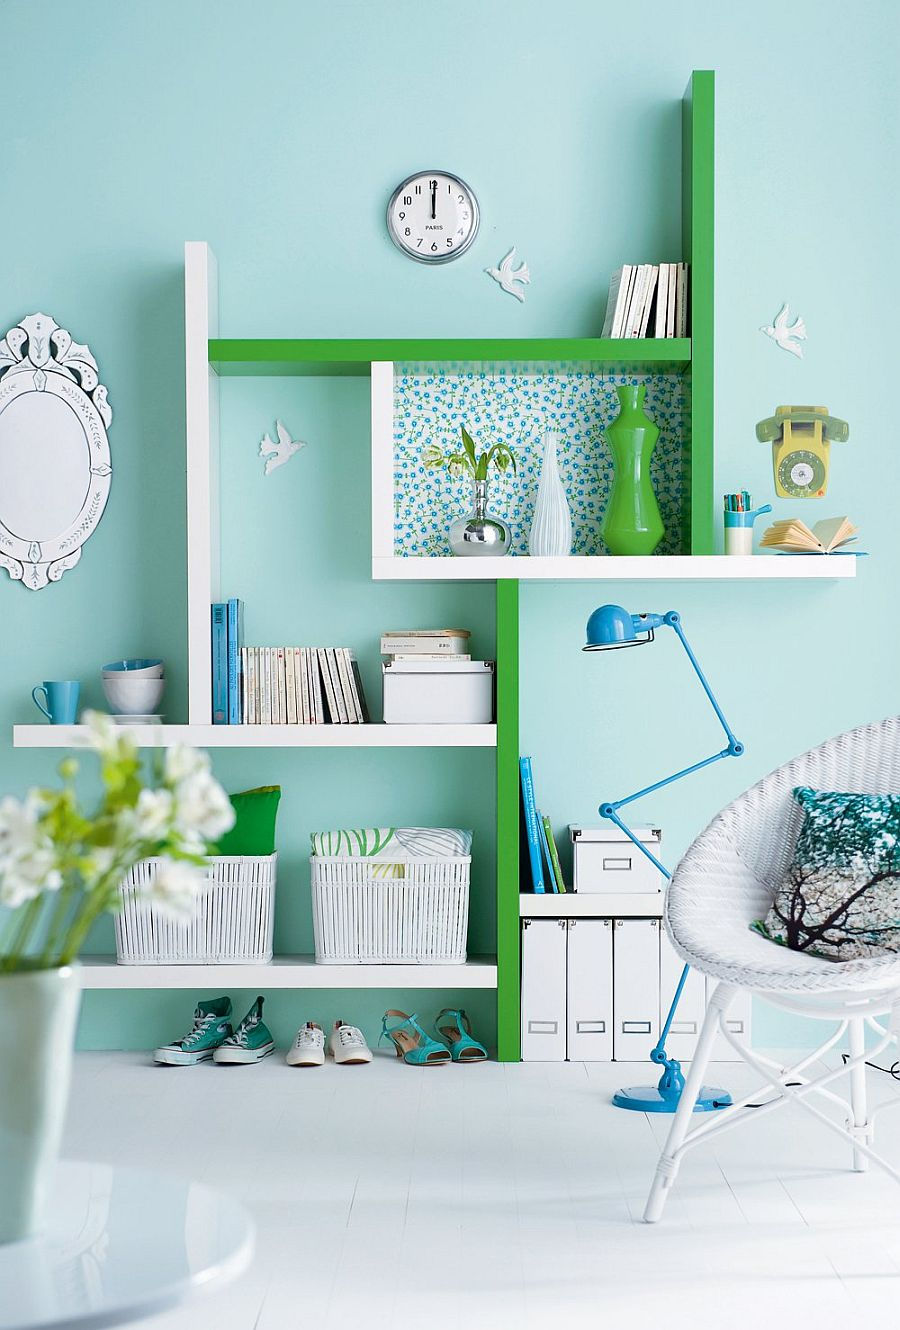 Shelving-brings-pops-of-green-to-the-smart-home-office-in-blue